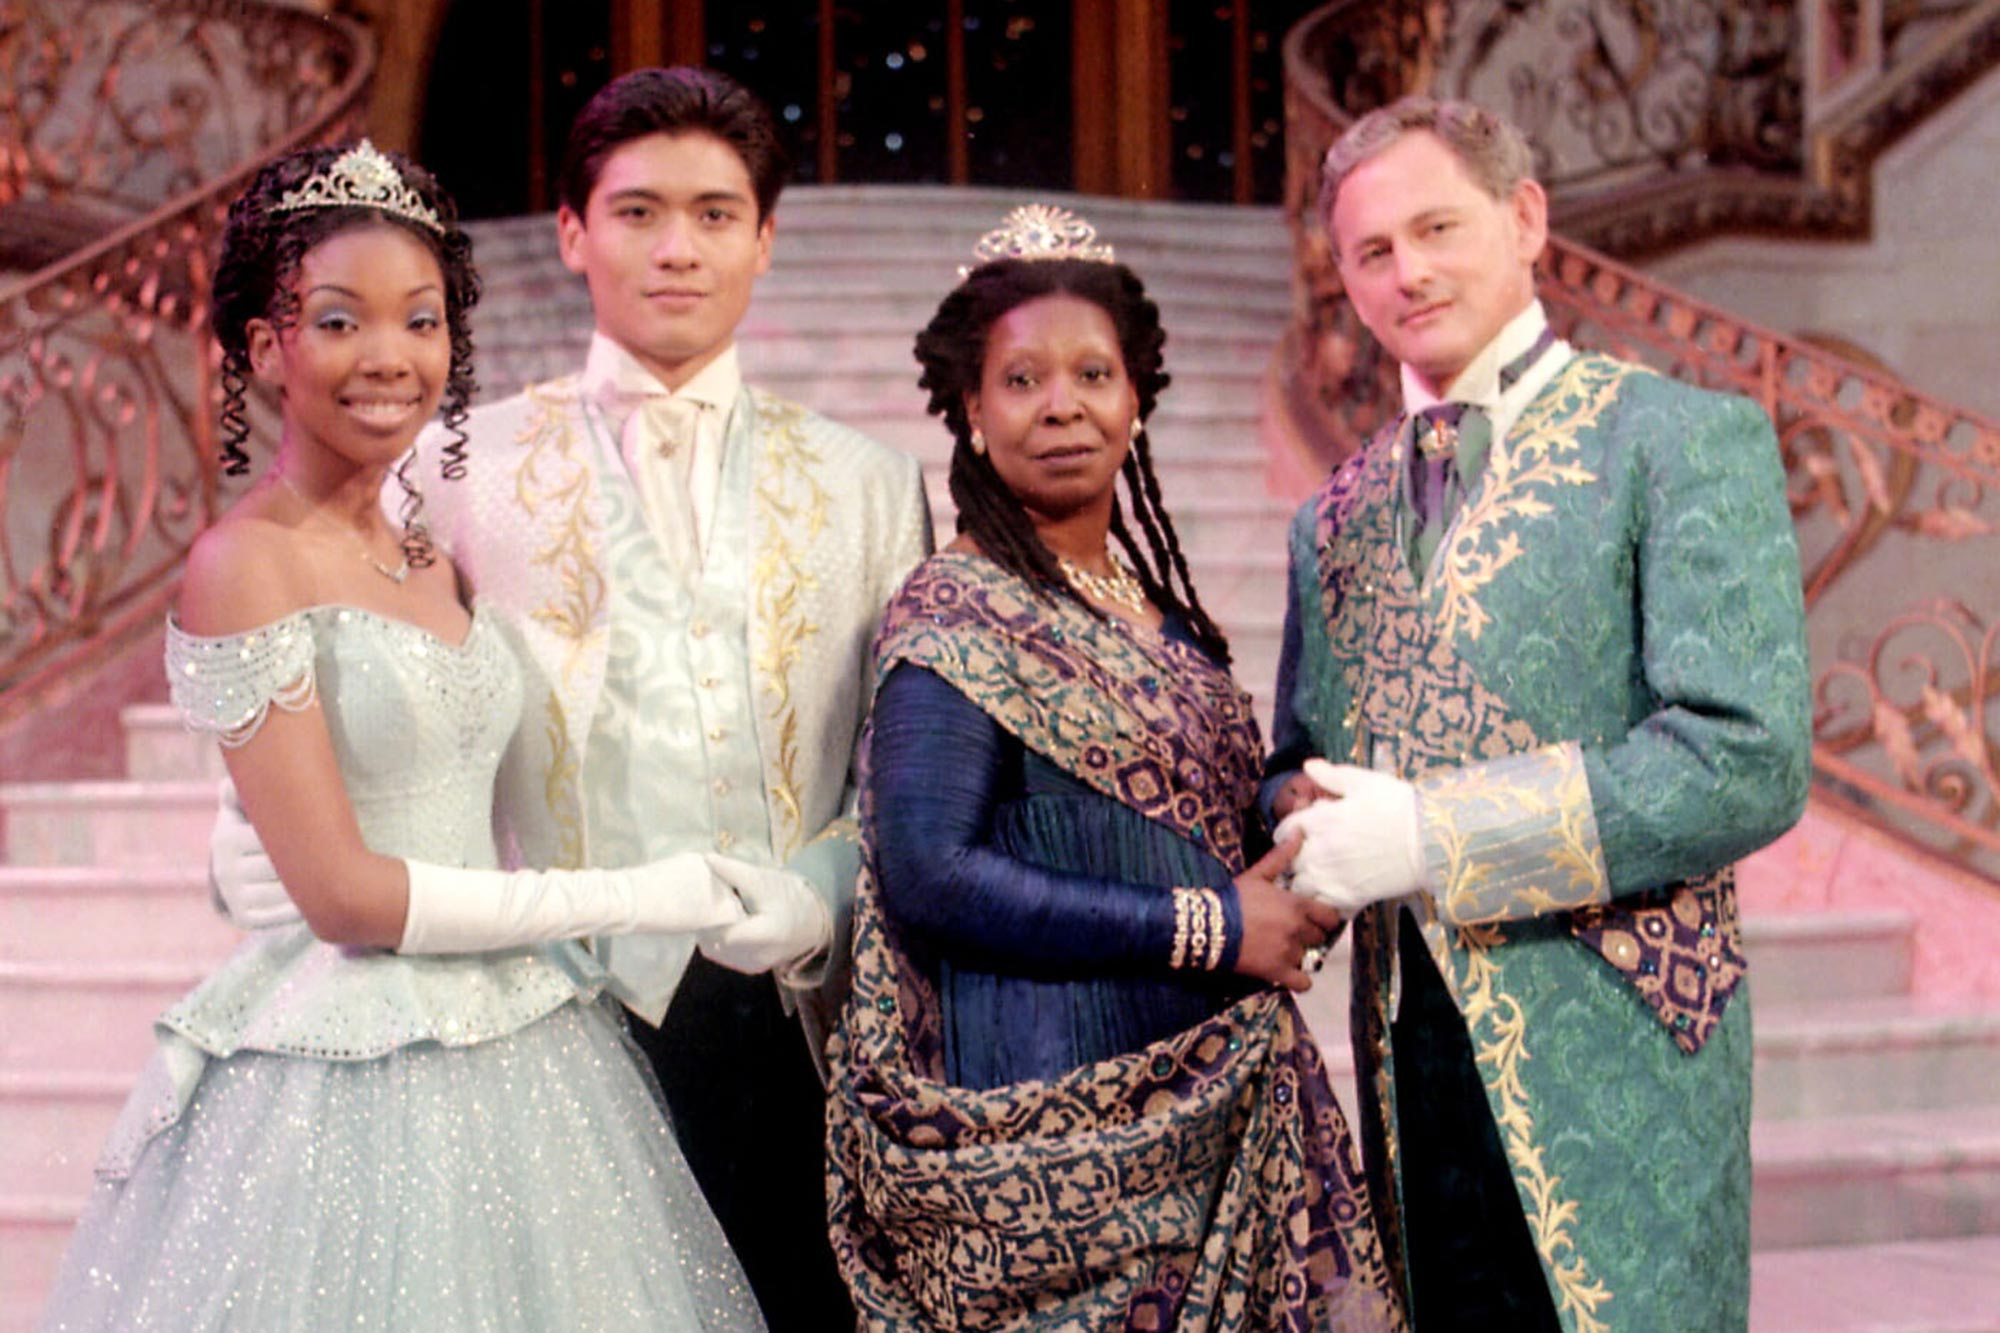 Brandy, Paolo Montalban, Whoopi Goldberg and Victor Garber